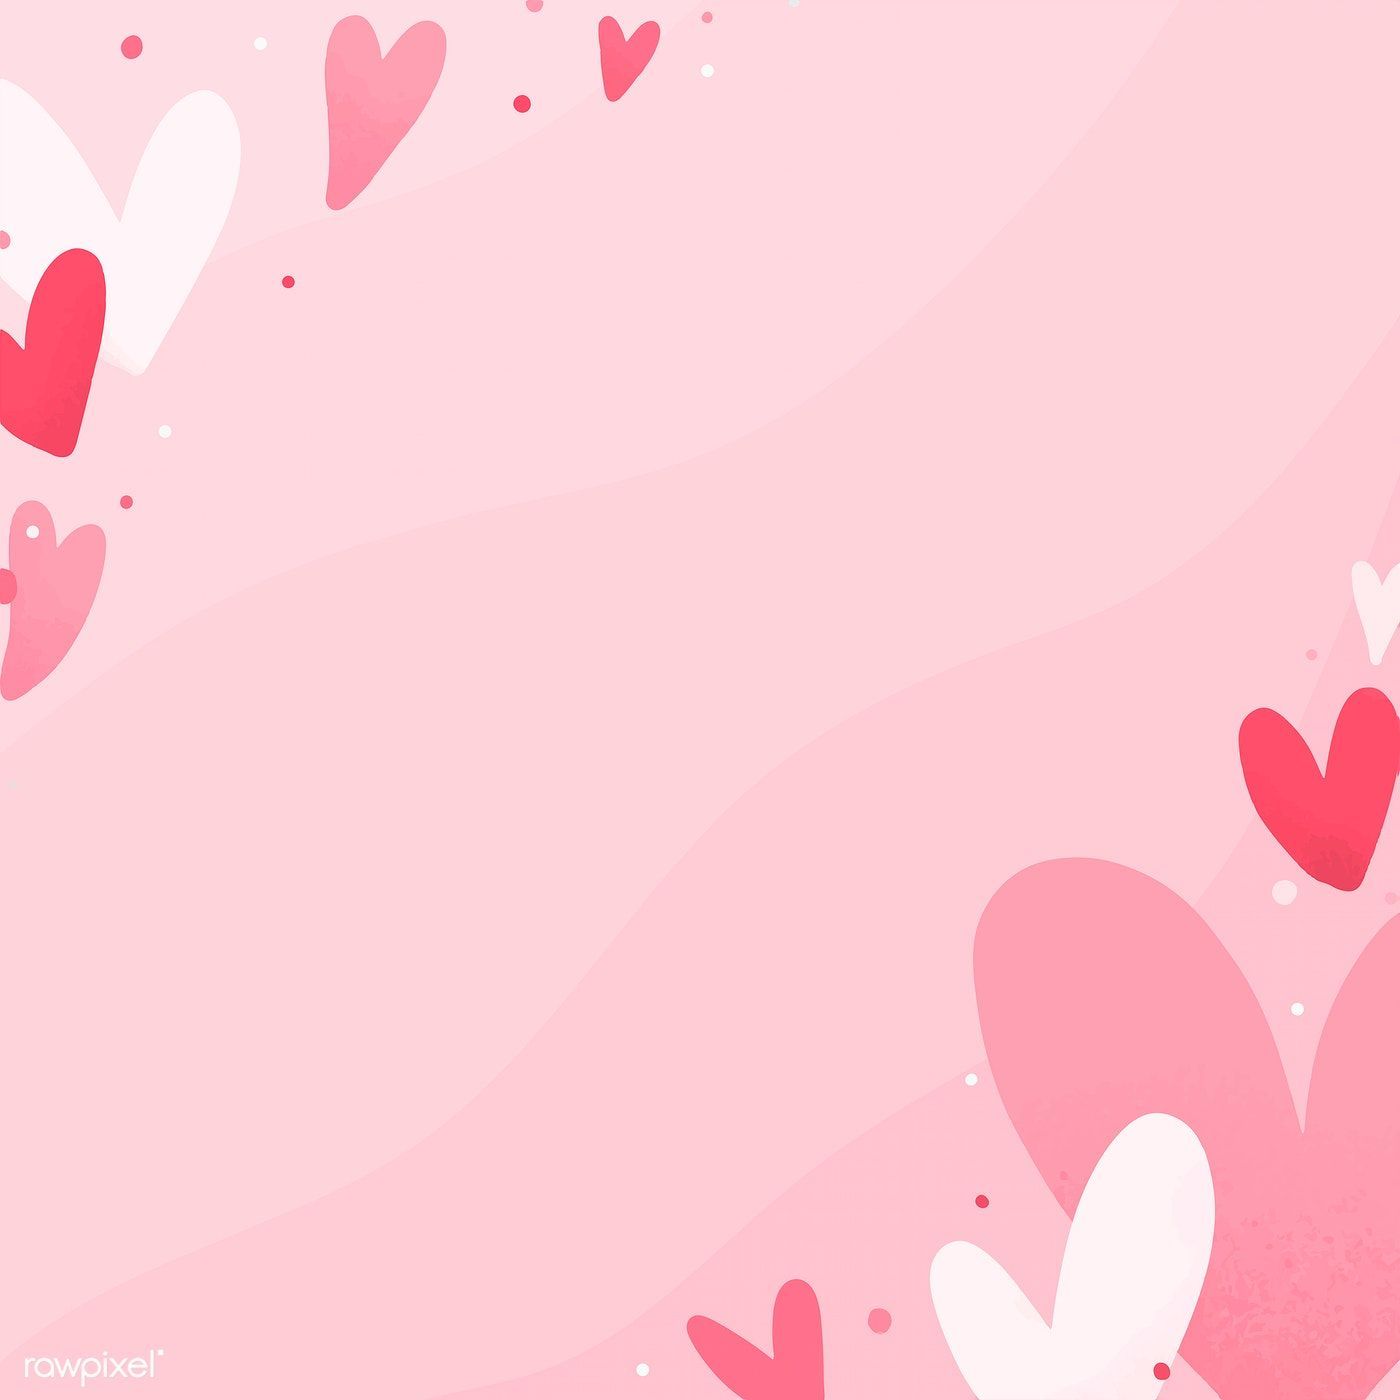 Valentines Day Card Vector Design With Copy Space Free Image By